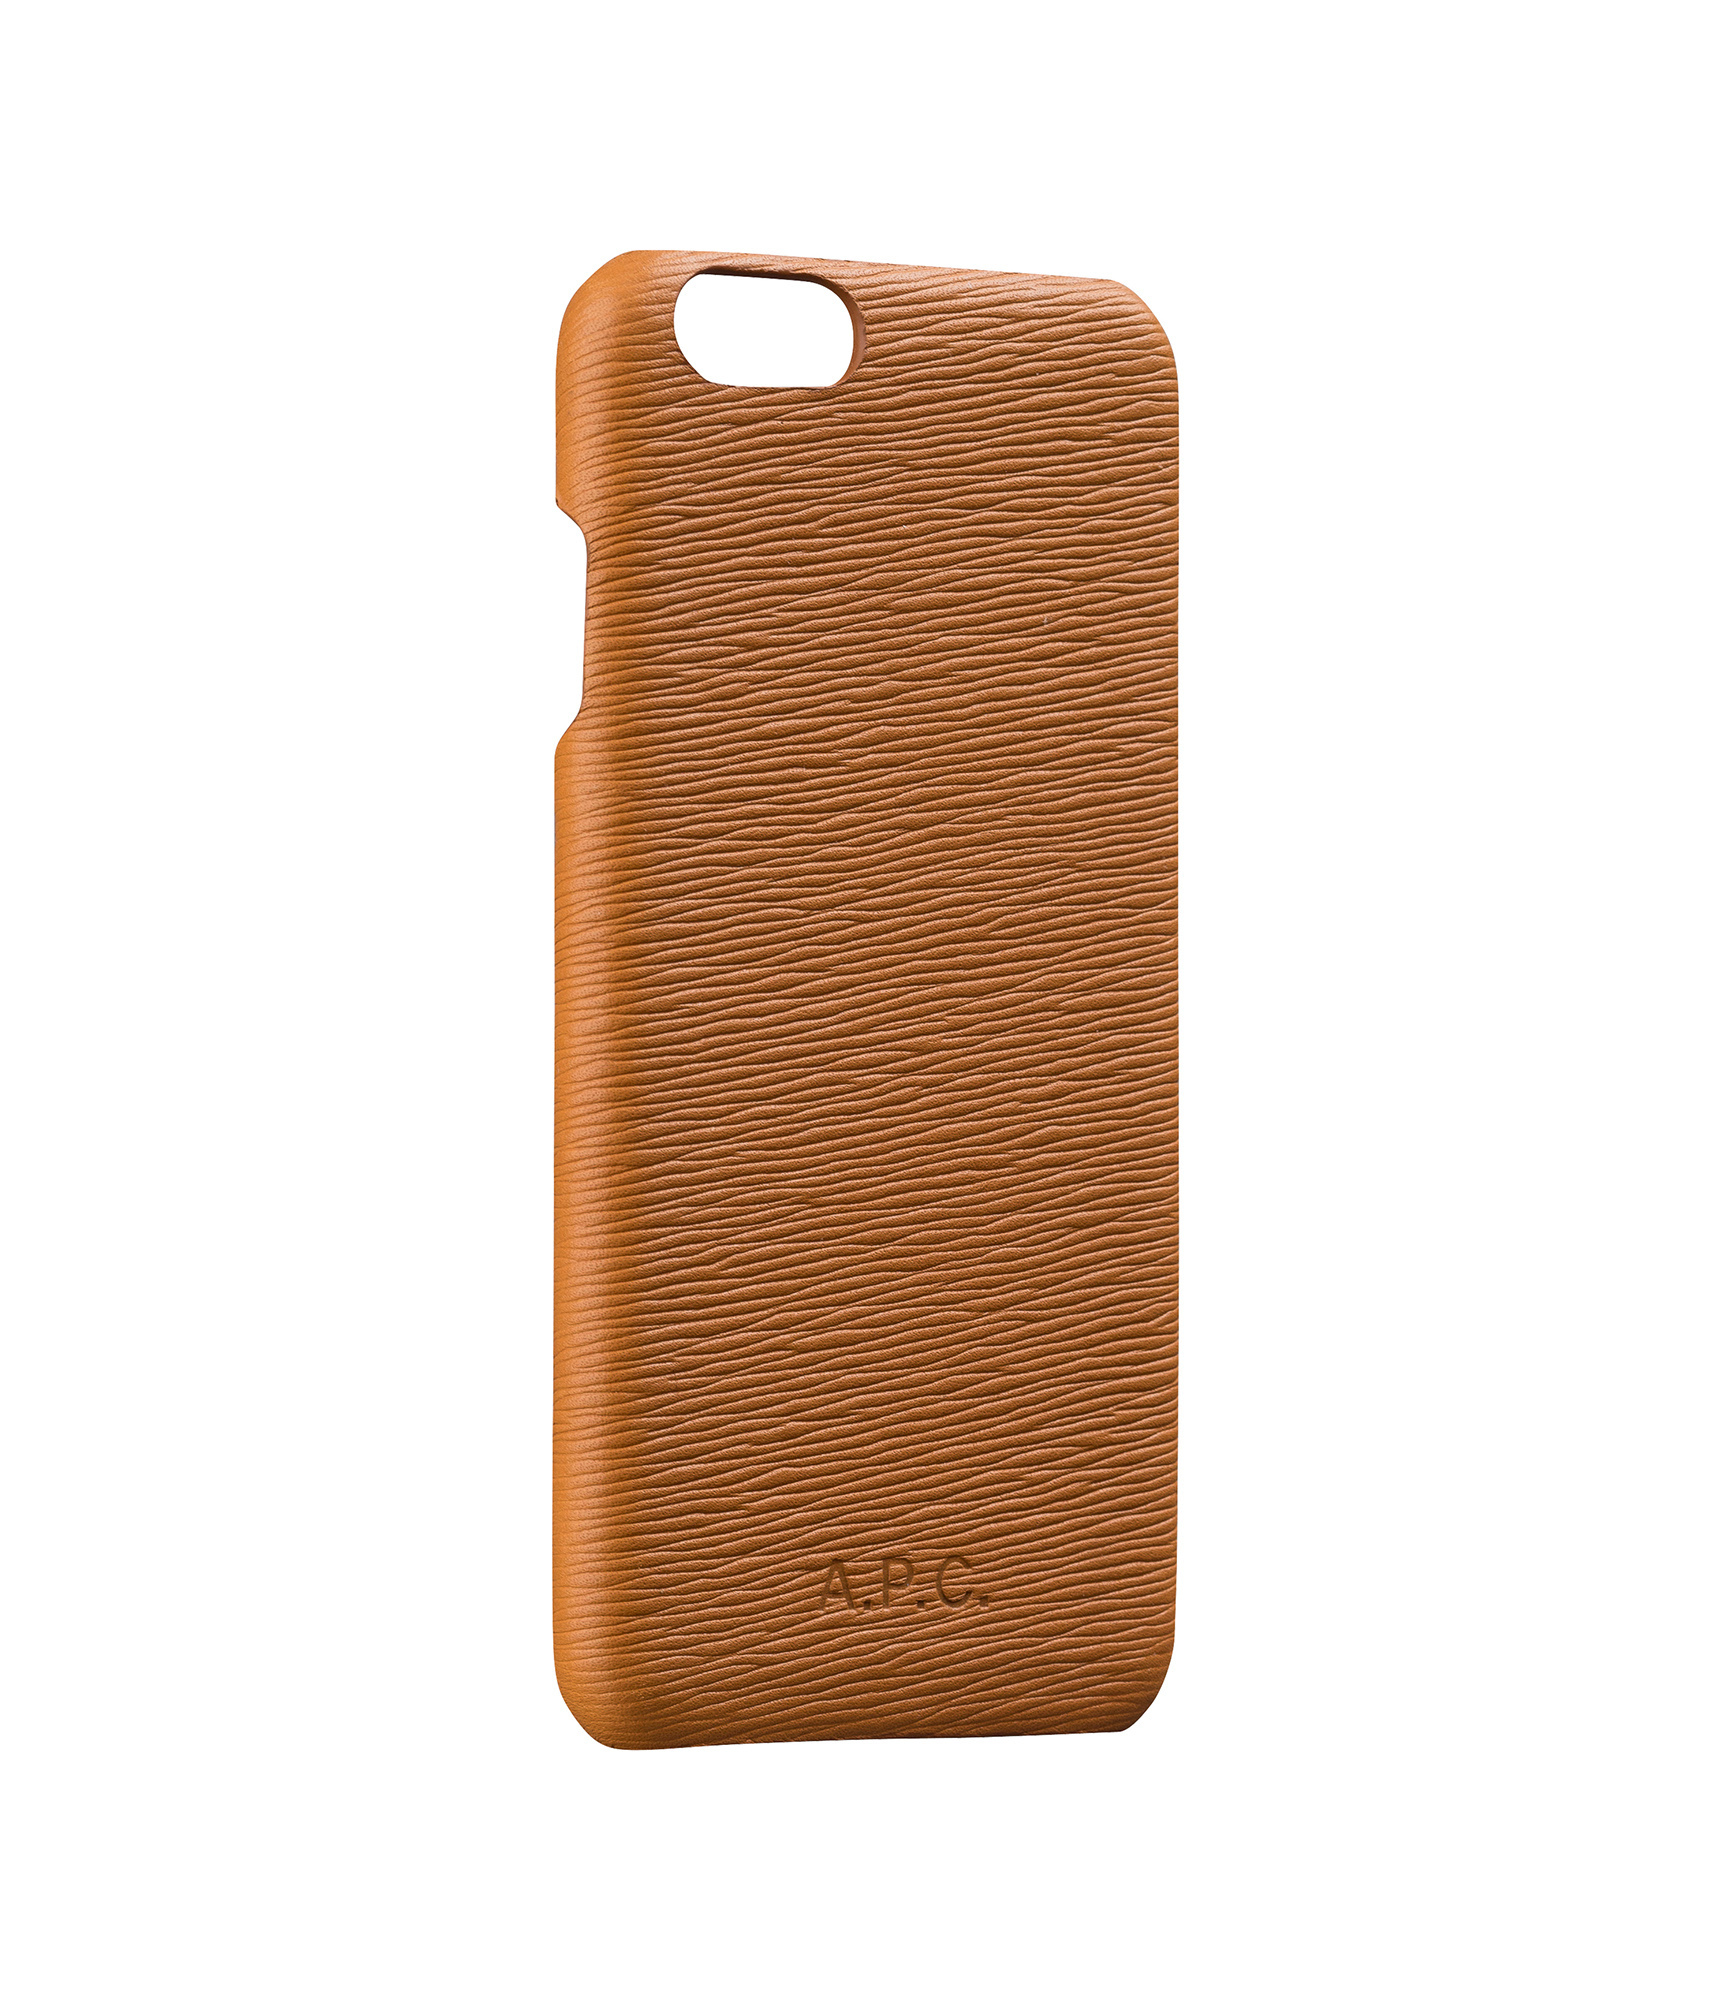 【A.P.C.】2017-18AW新作 iPhone 6 ケース ウィスキー